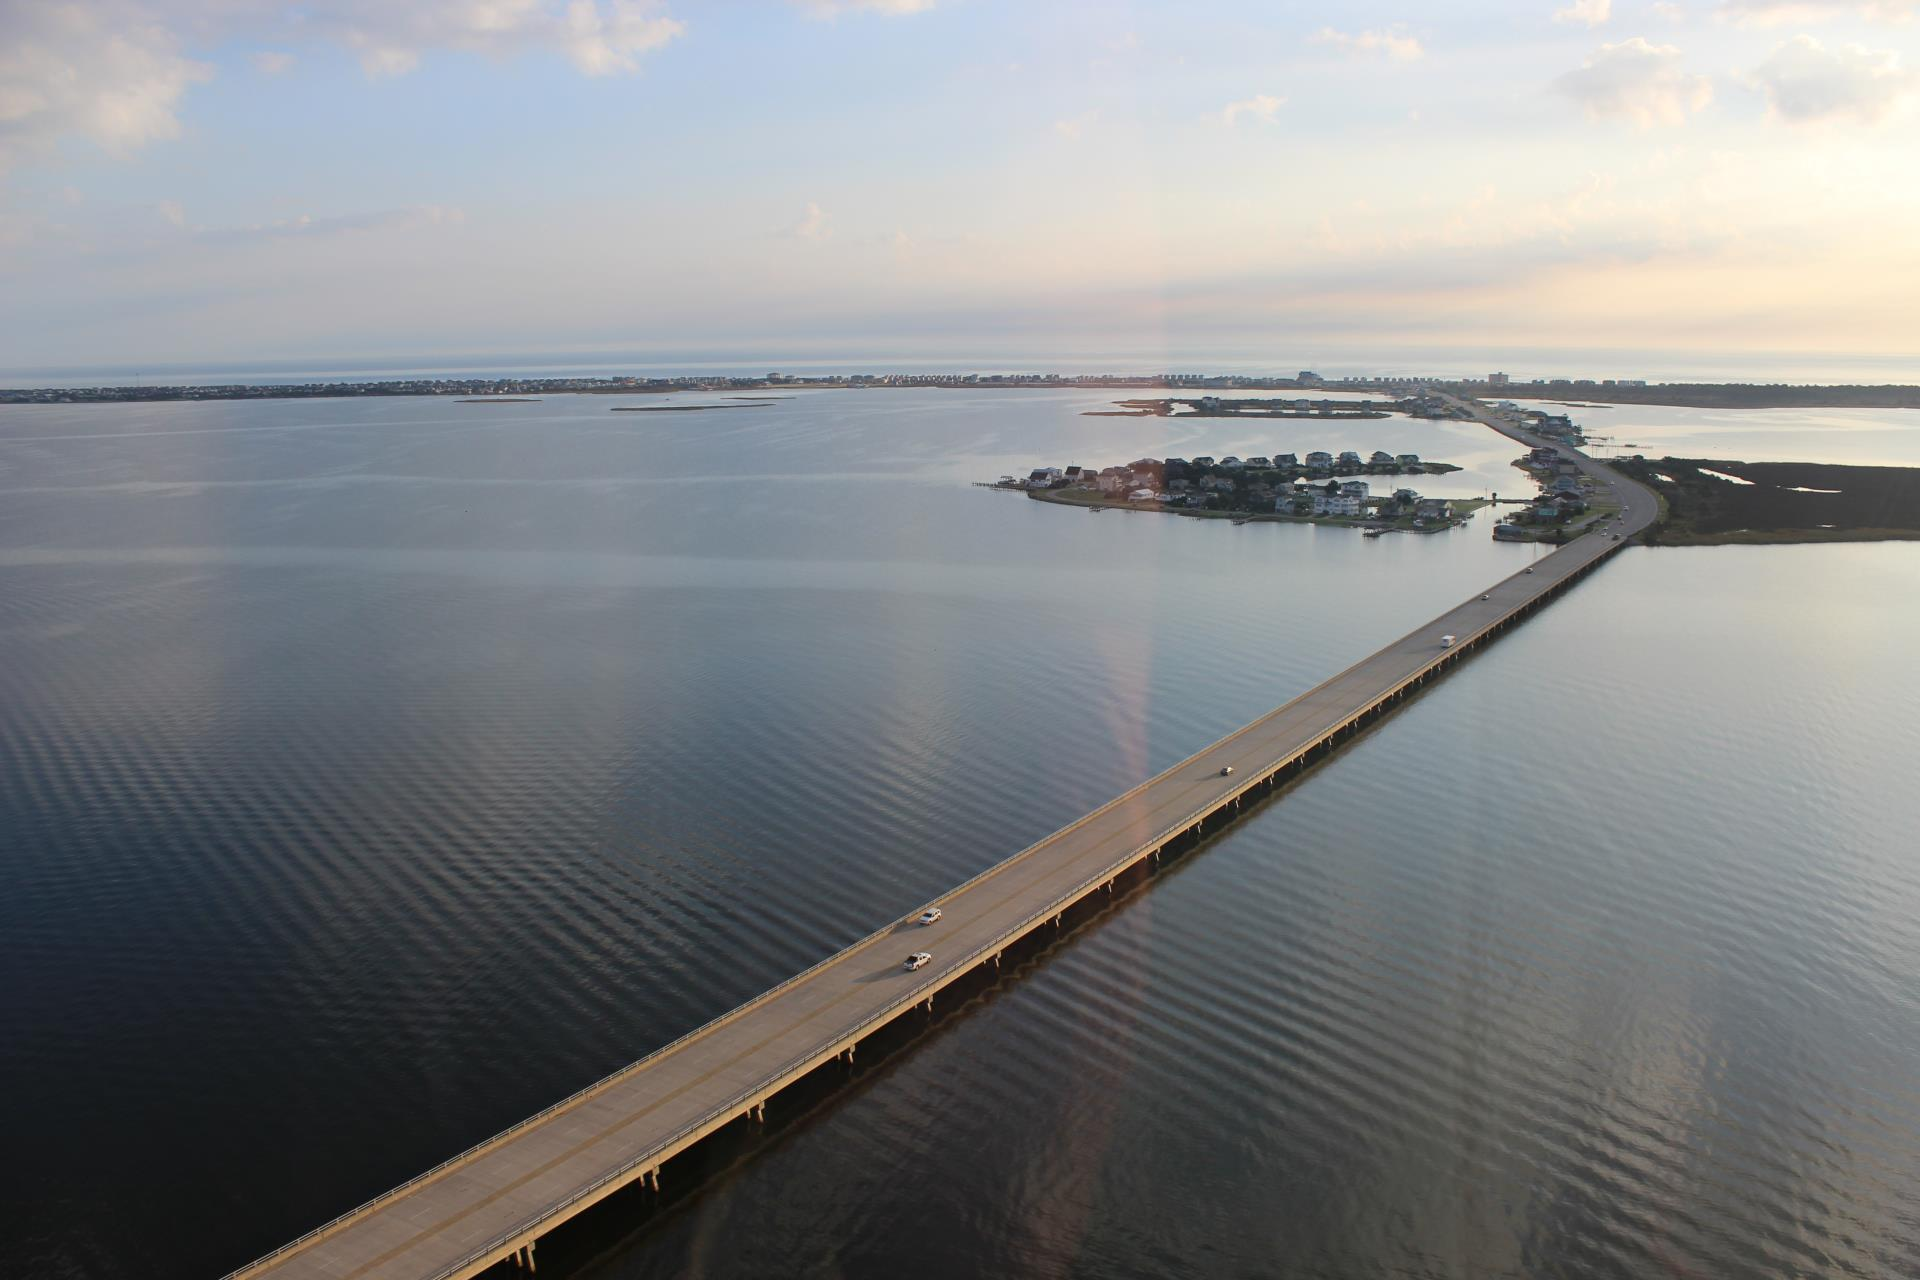 The Washington Baum Bridge Connecting Roanoke Island to the Northern Beaches